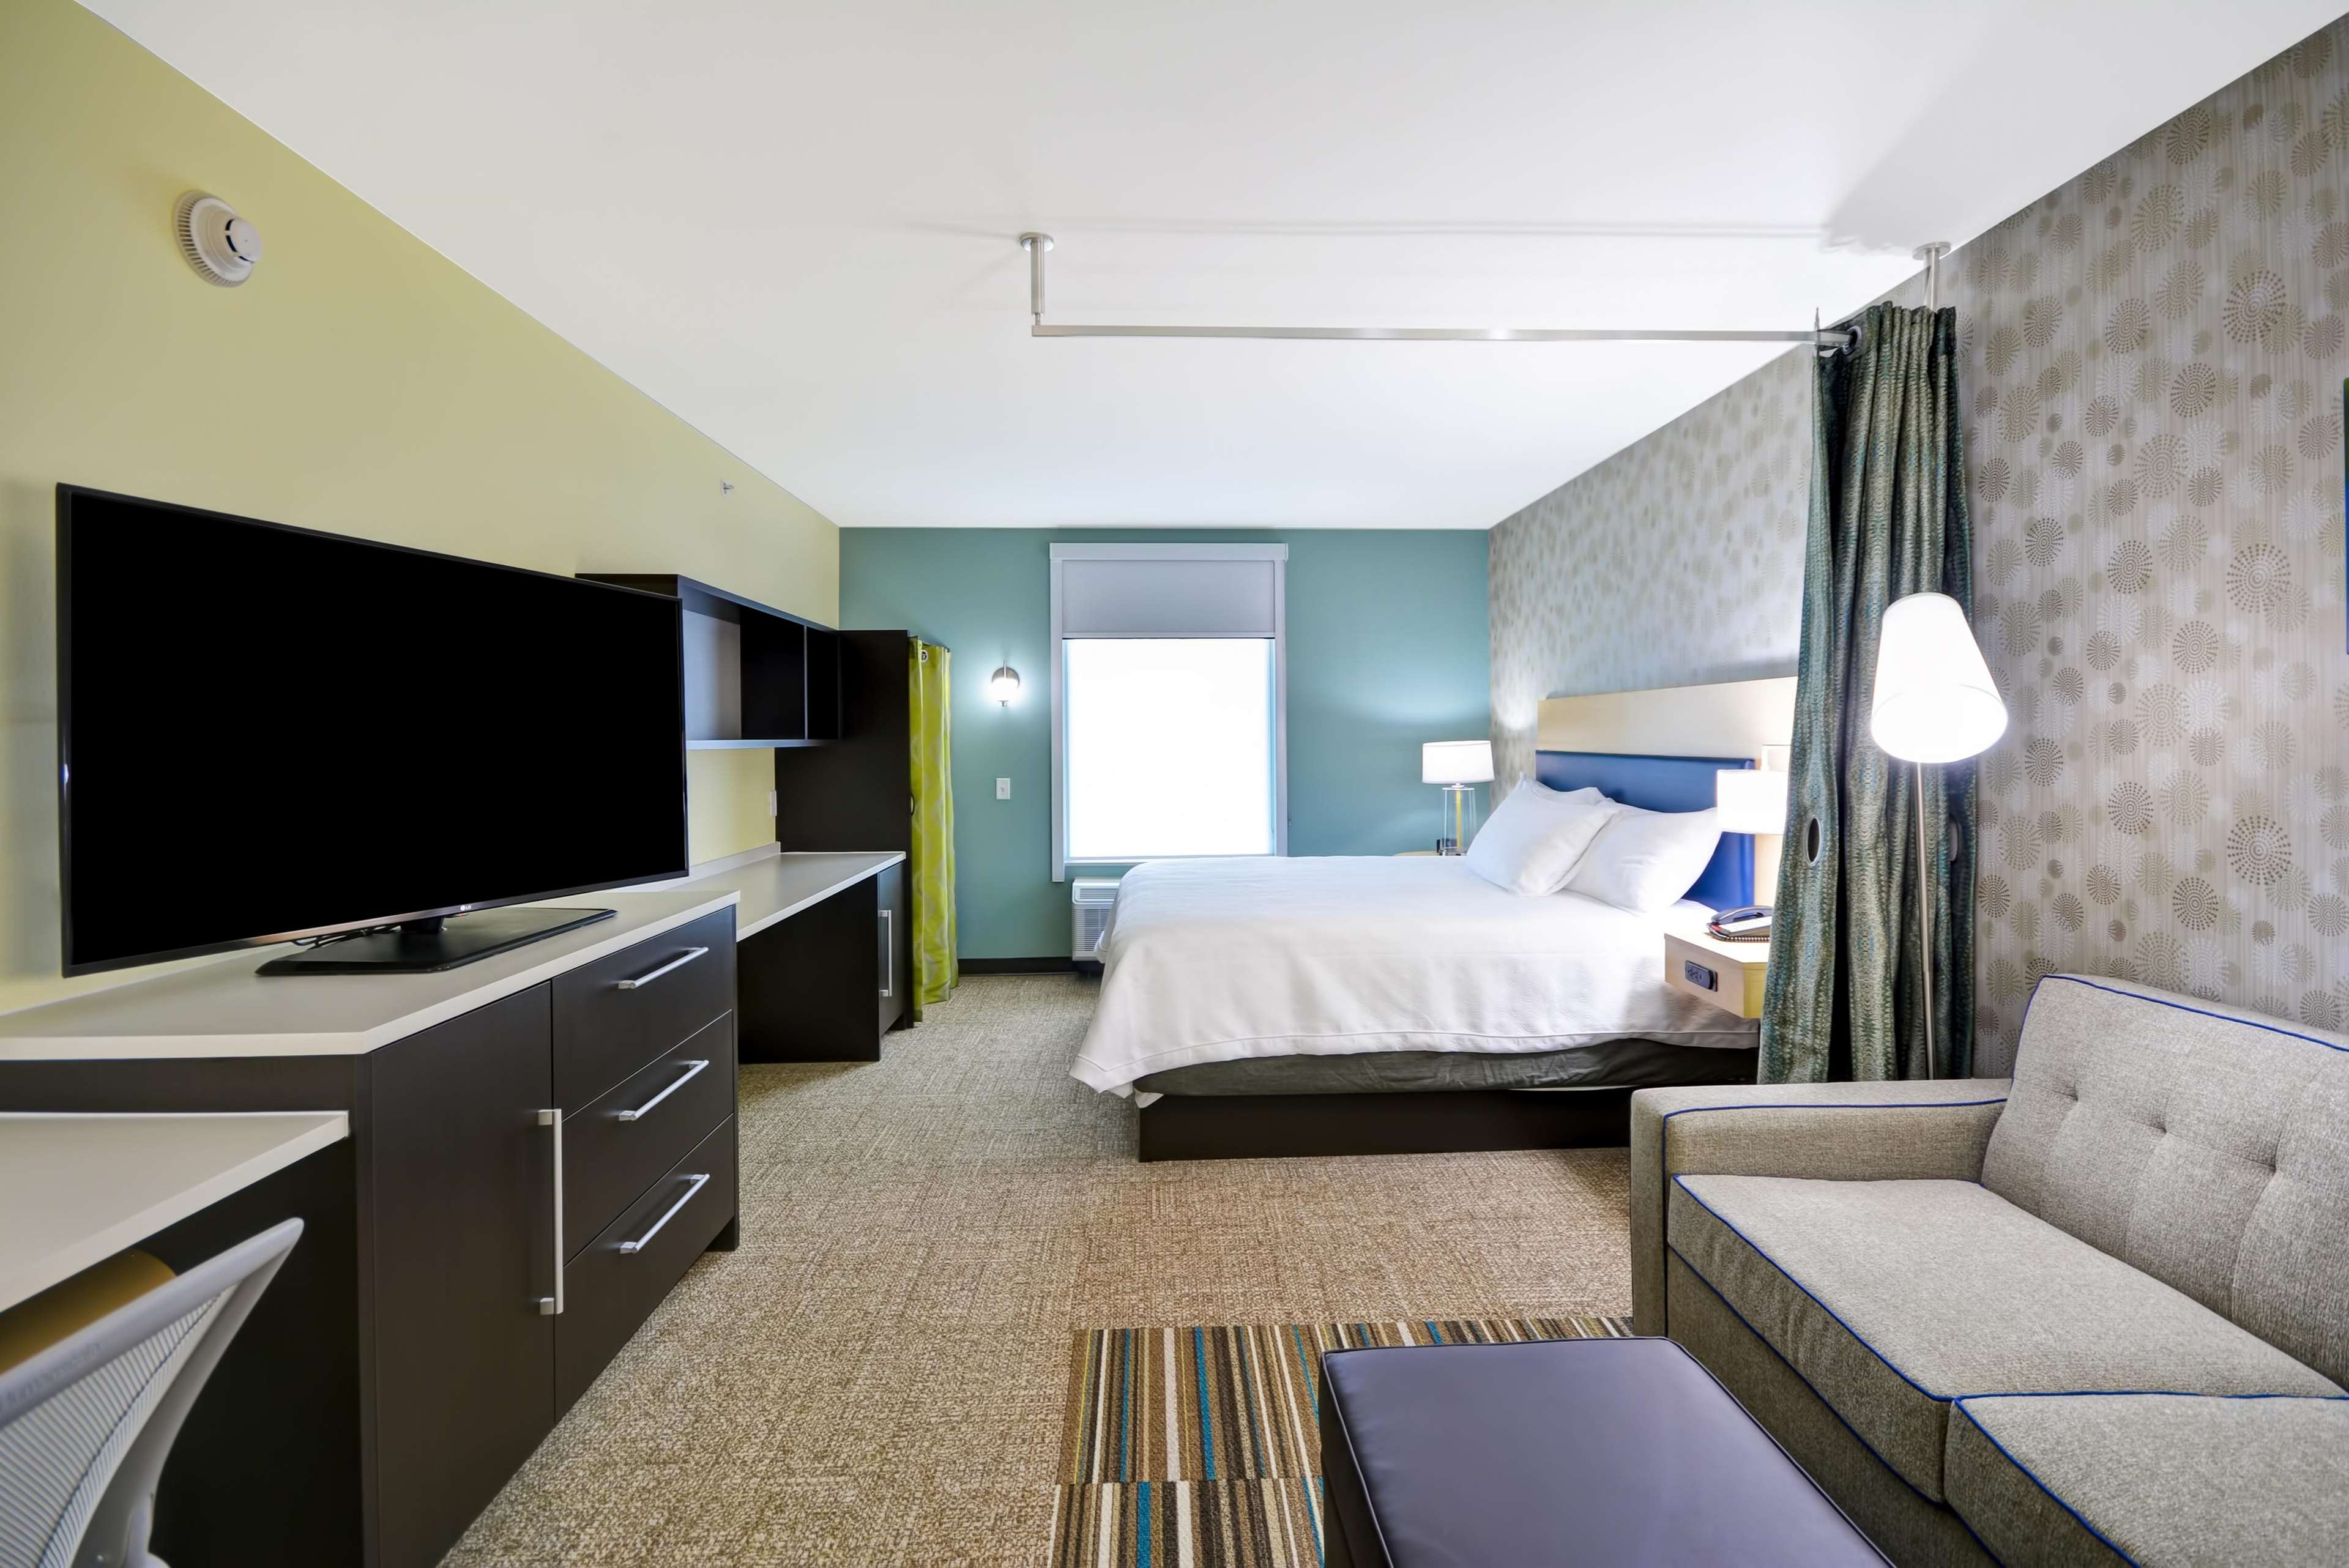 Home2 Suites By Hilton Maumee Toledo image 4